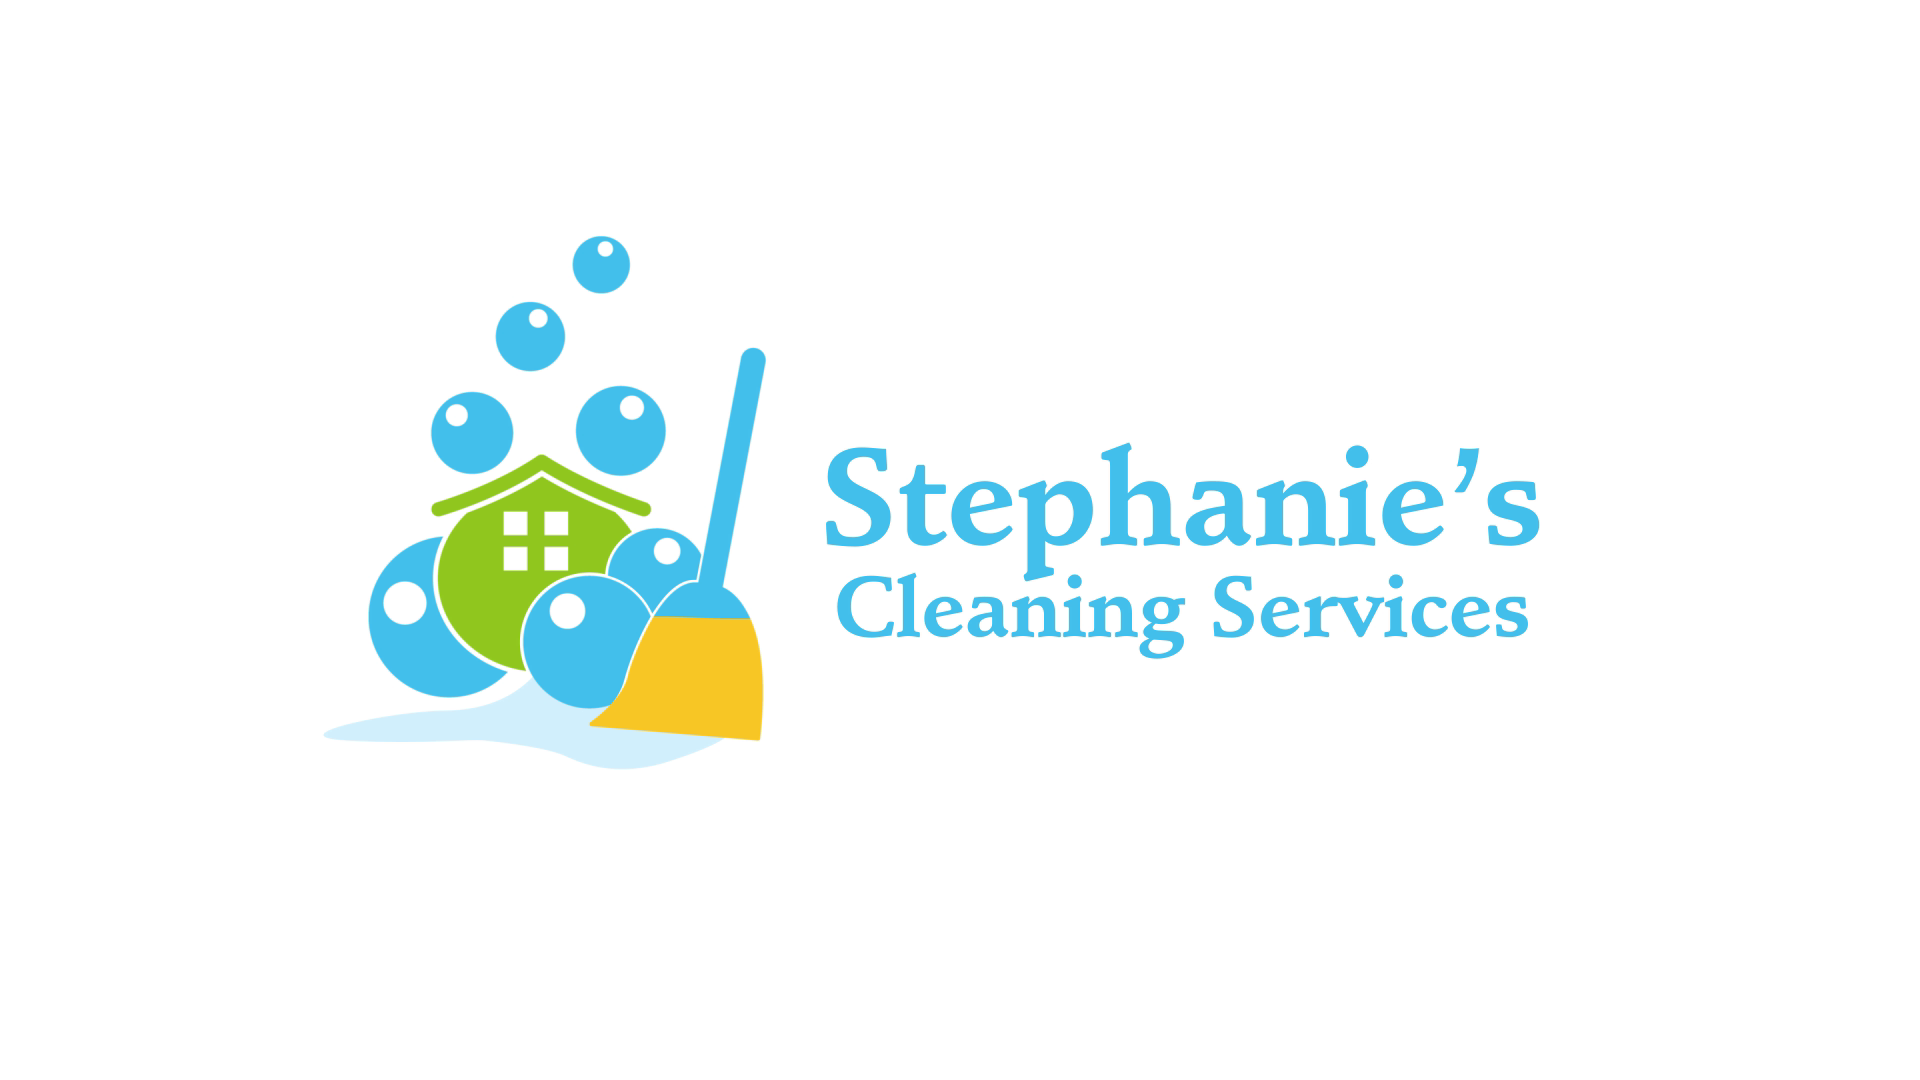 Stephanies Cleaning